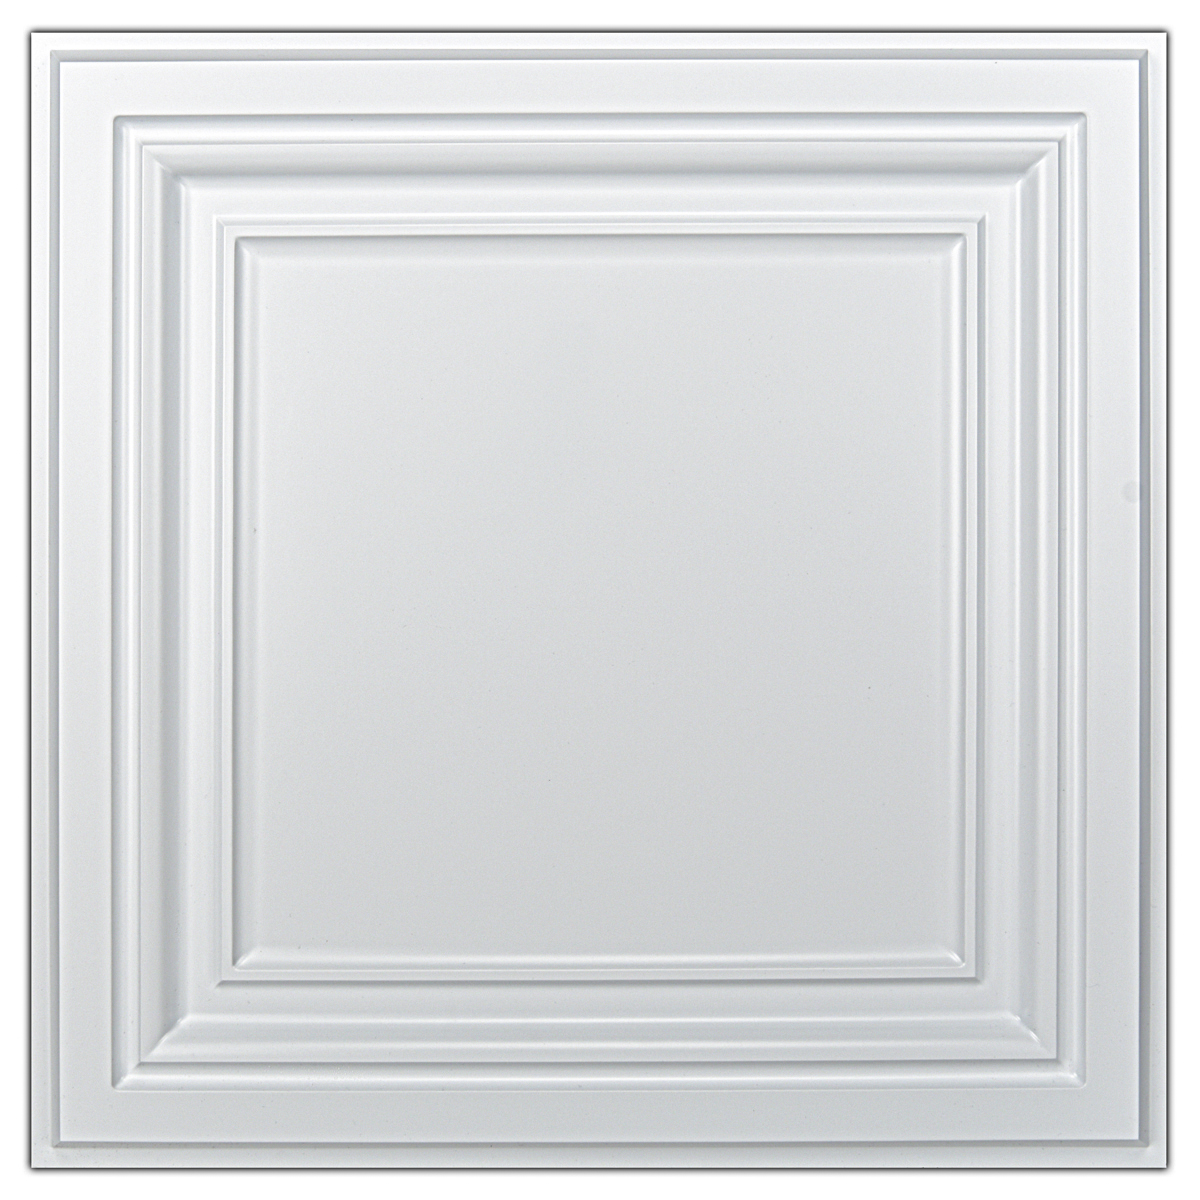 A10905P12 -Decorative Ceiling Tile 2x2 Glue up, Lay in Ceiling Tile 24x24 Pack of 12pcs Spanish in Matt White